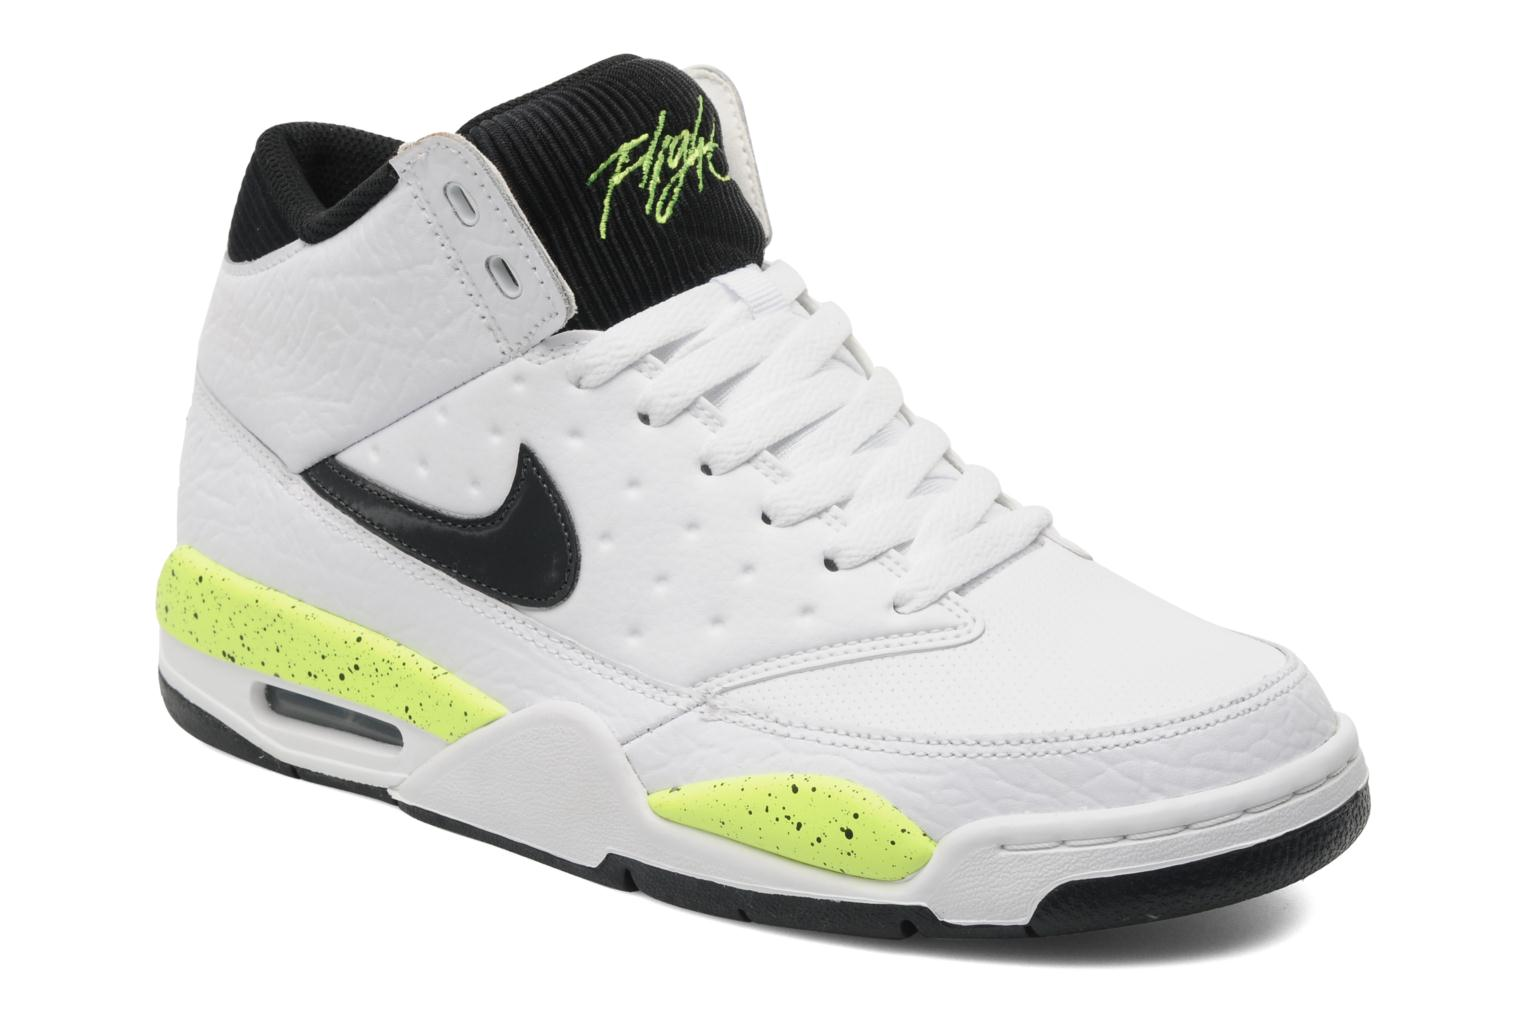 nike nike air flight classic trainers in white at sarenza. Black Bedroom Furniture Sets. Home Design Ideas